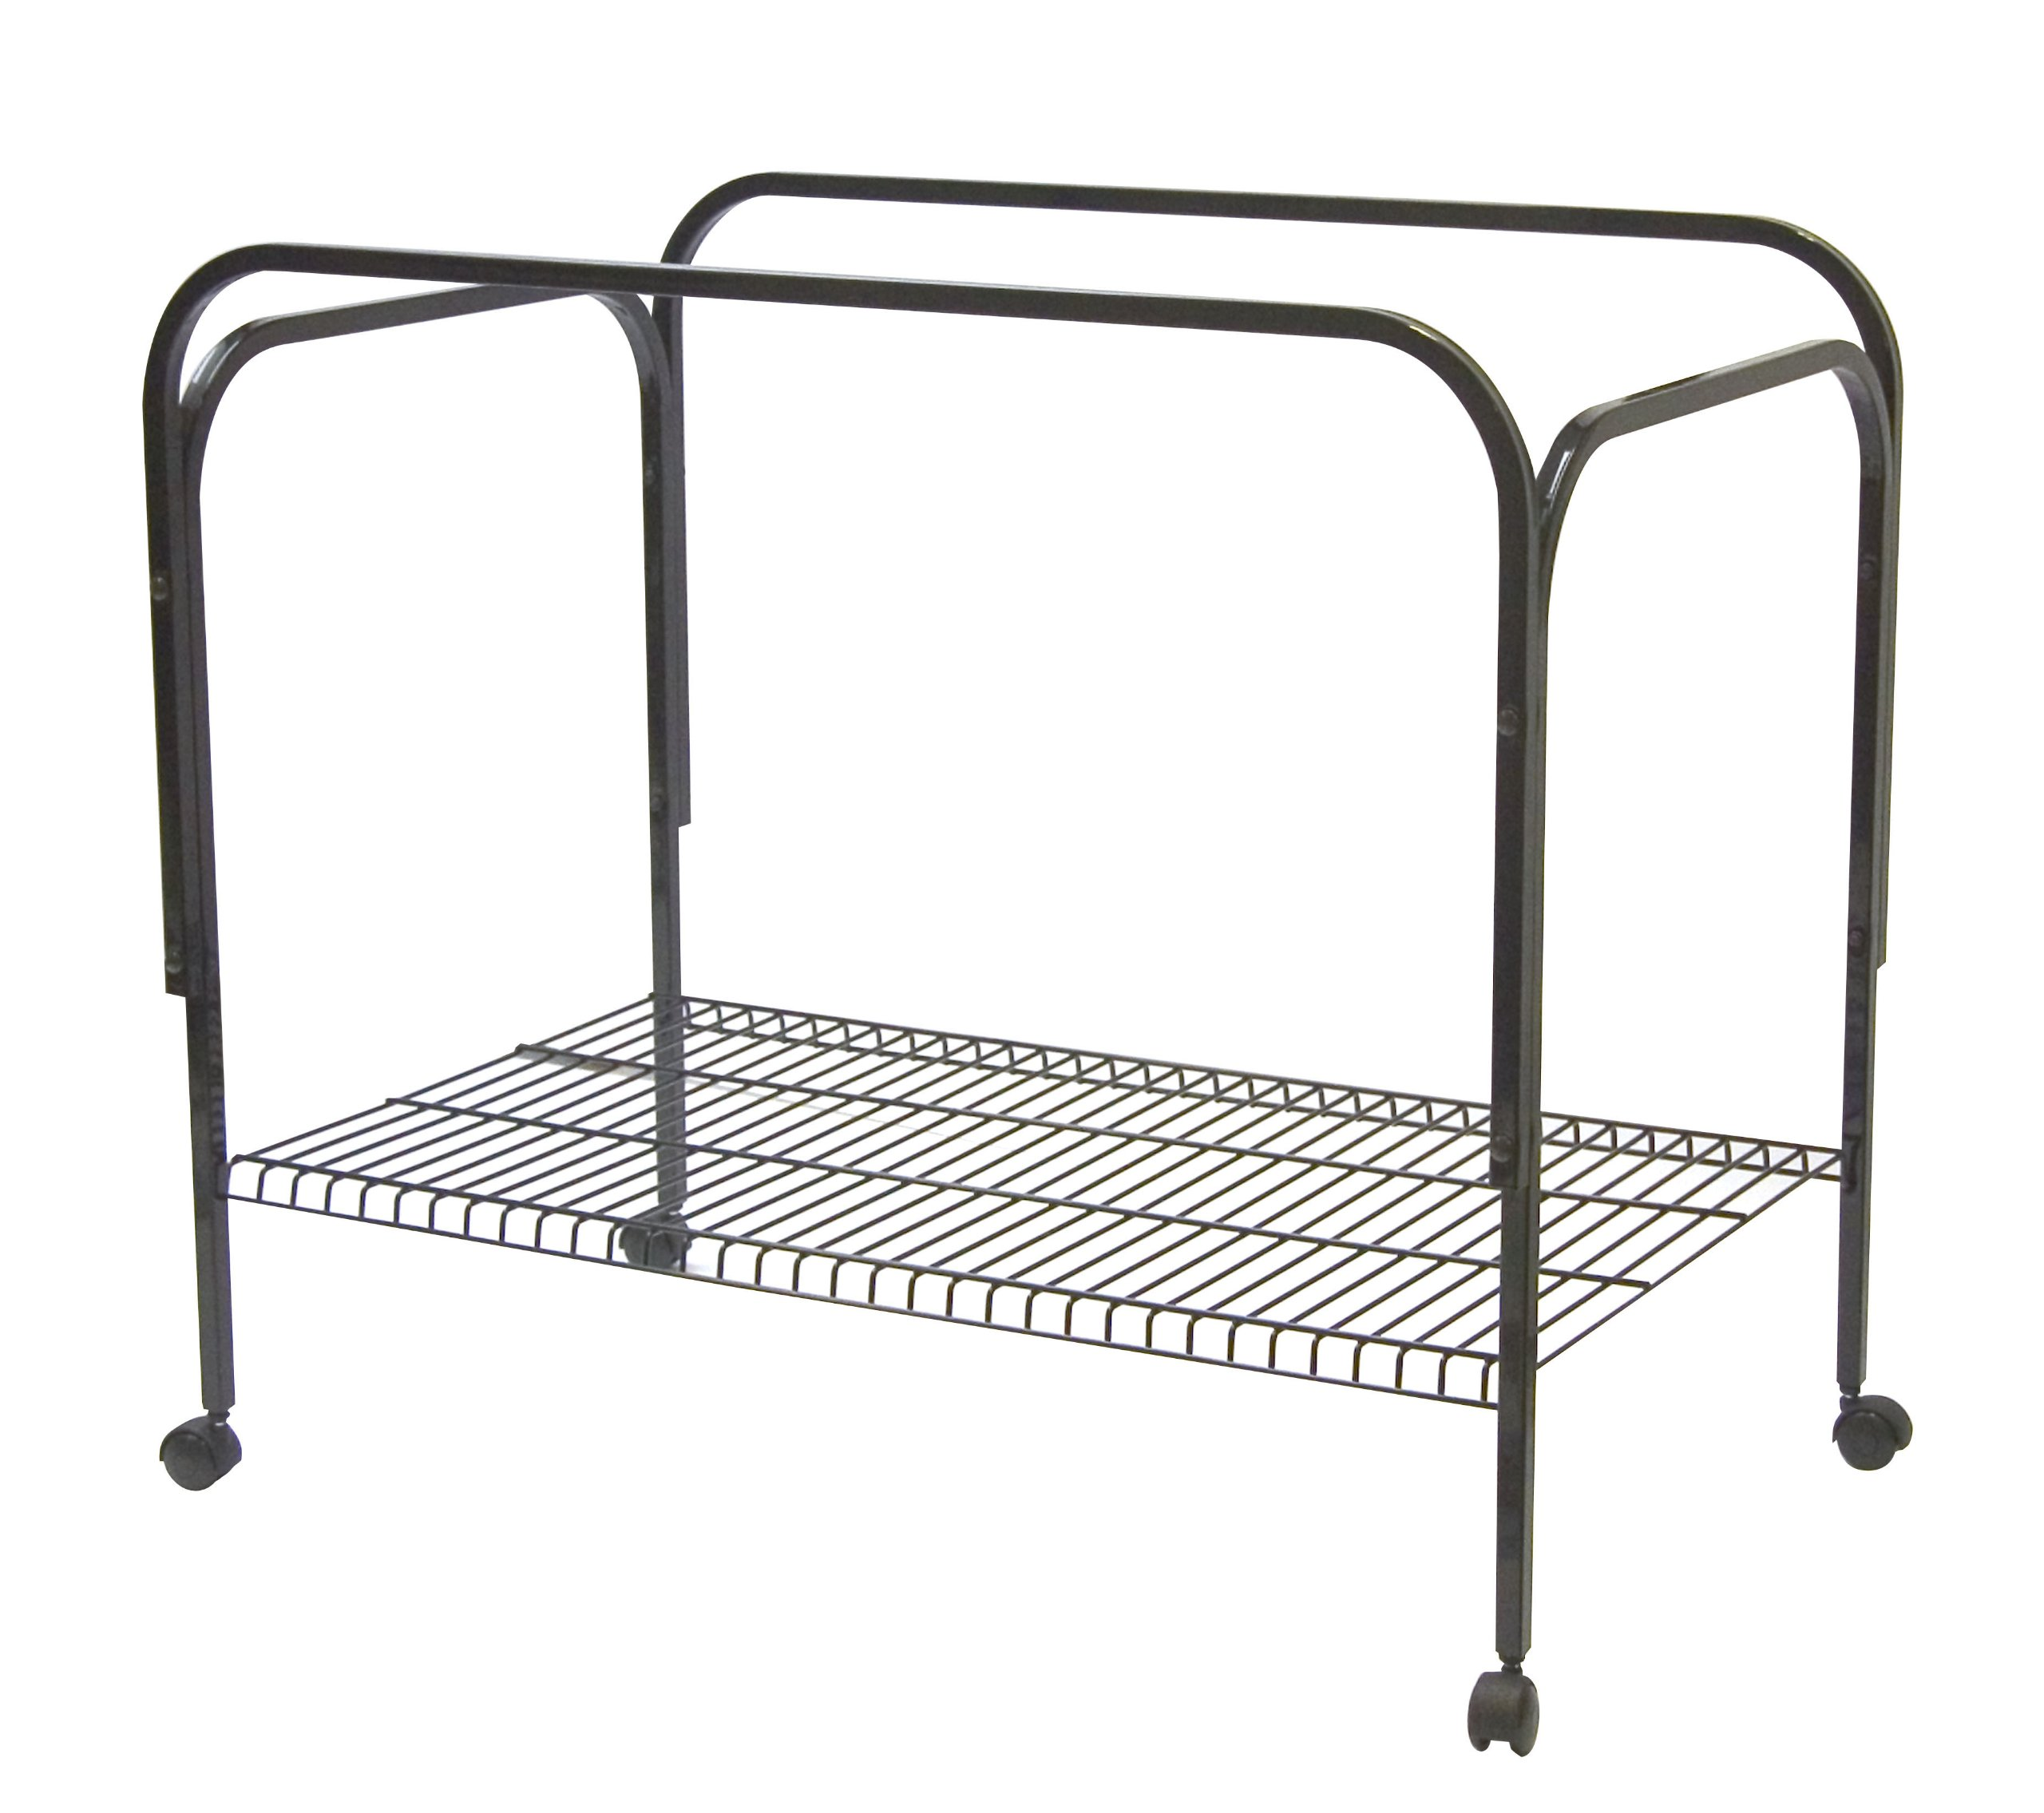 Marchioro Vekto 102 Cage Stand for Small Animals, 38 inches, Black